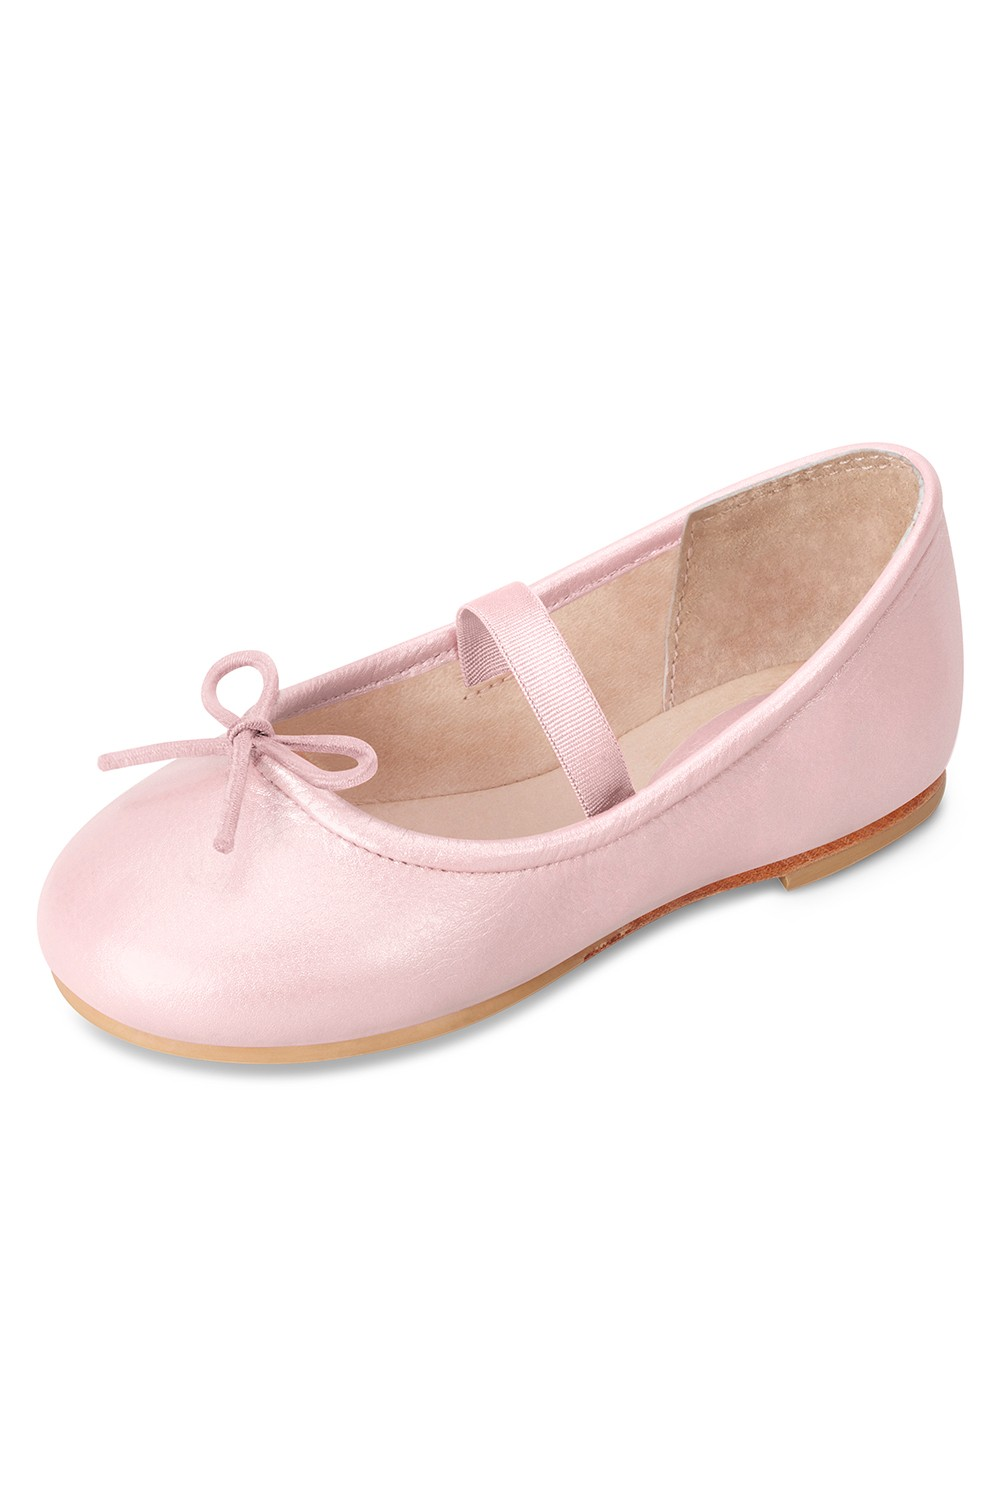 Toddler Argento Arabella Ballet Flat Shoes Toddlers Fashion Shoes